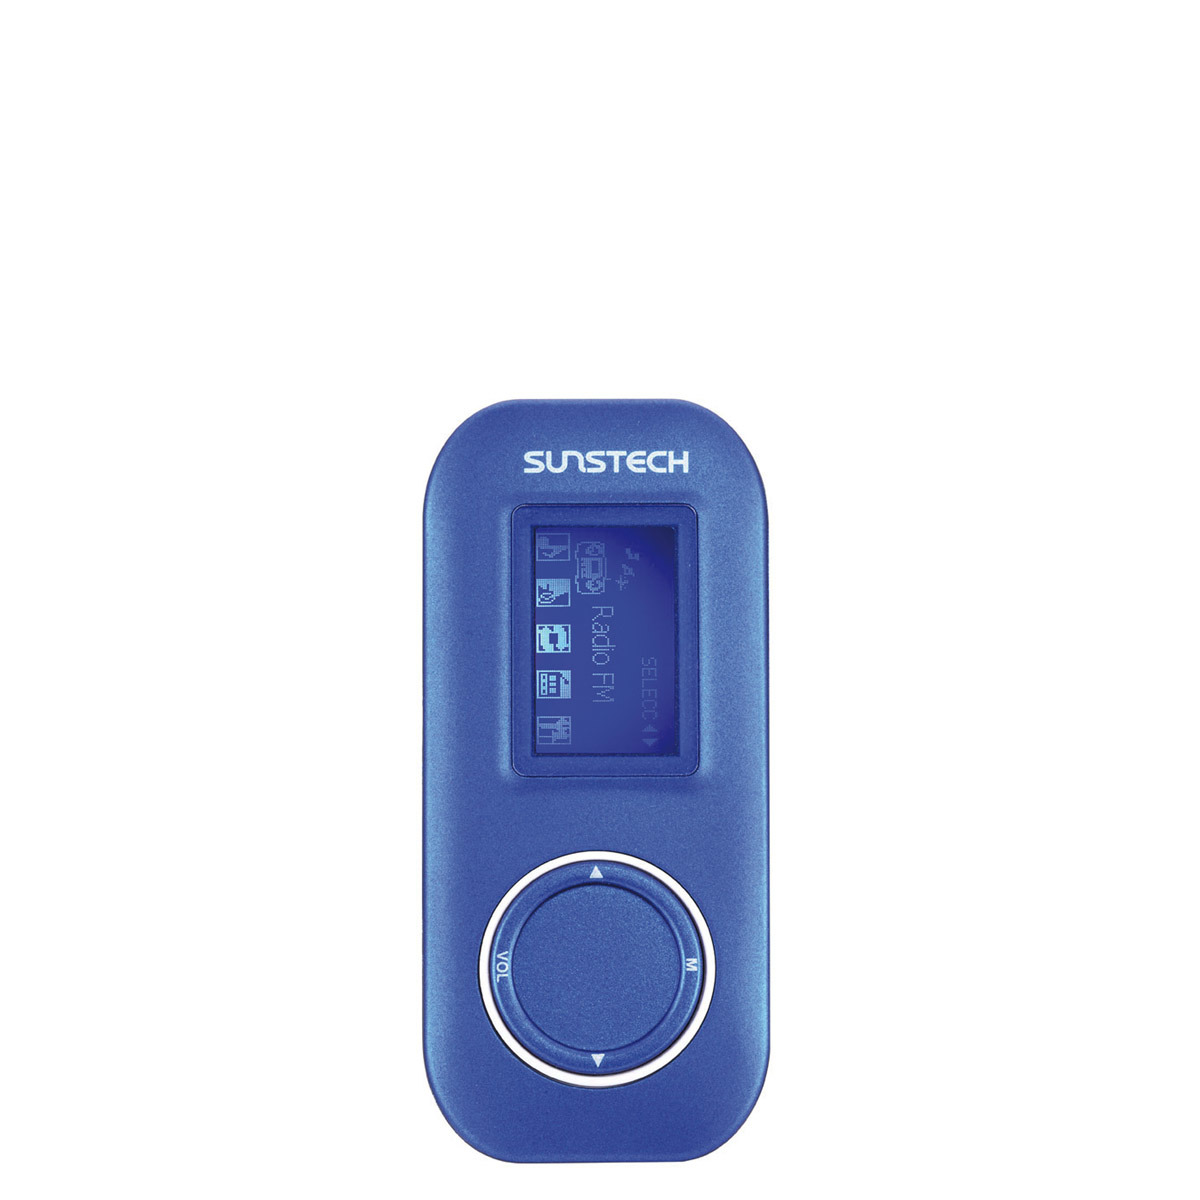 Reproductor MP3 Sunstech Fauno de 4 GB con radio FM